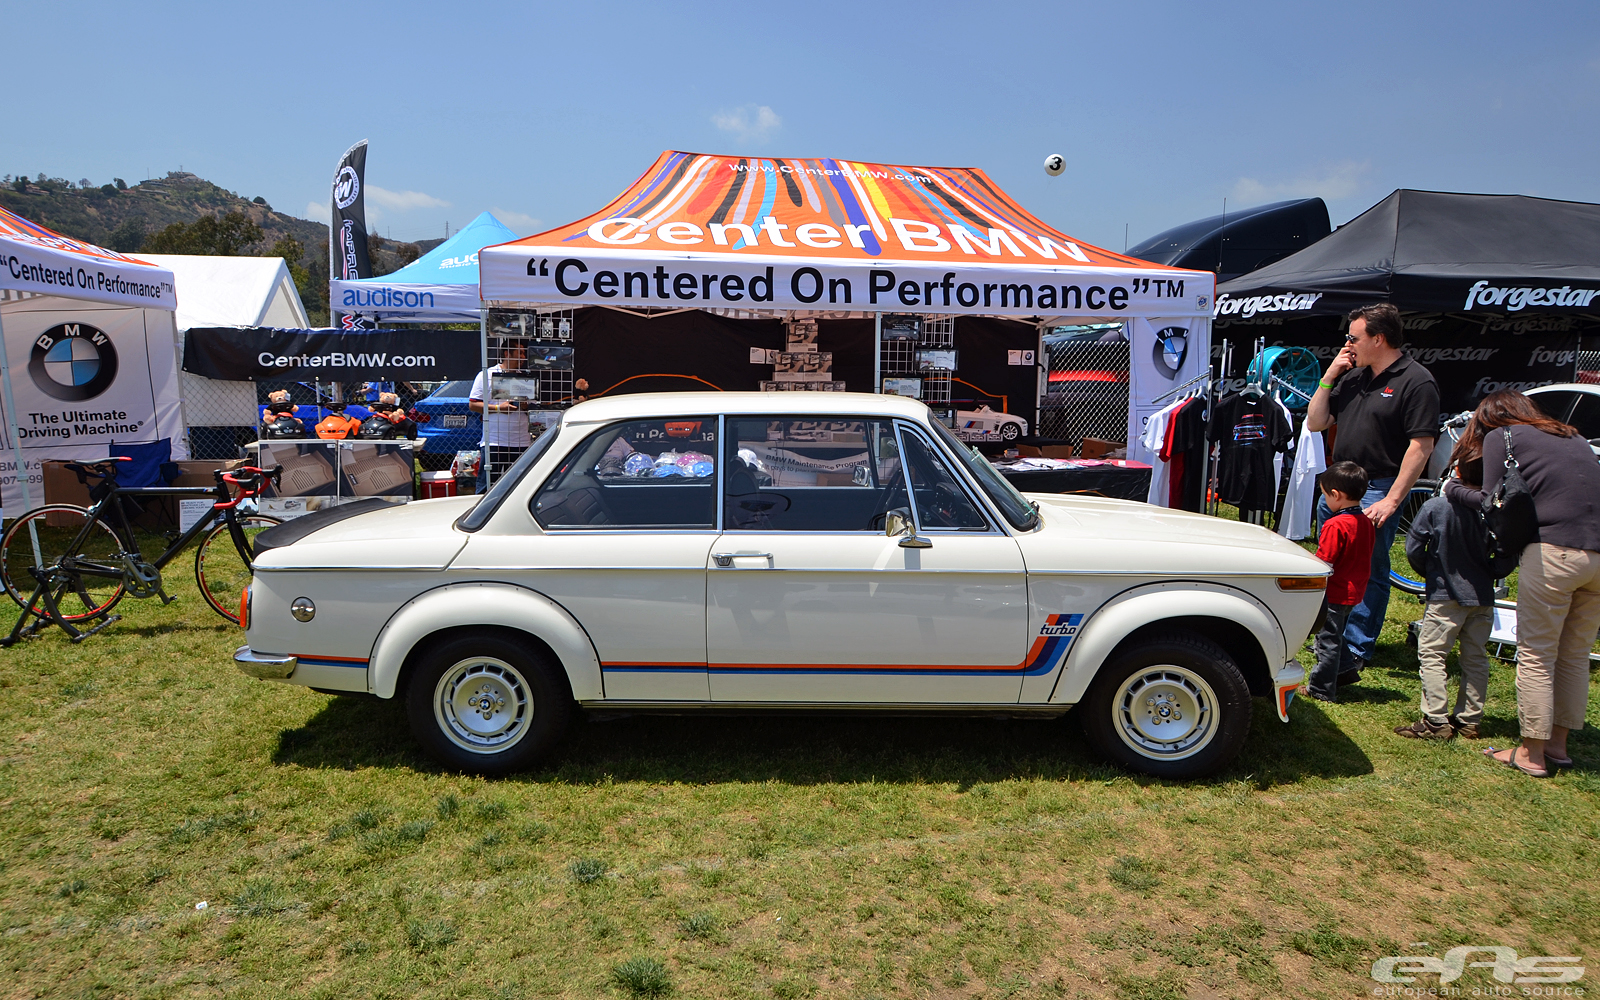 European Auto Source At The 2013 Bimmerfest Photo Gallery